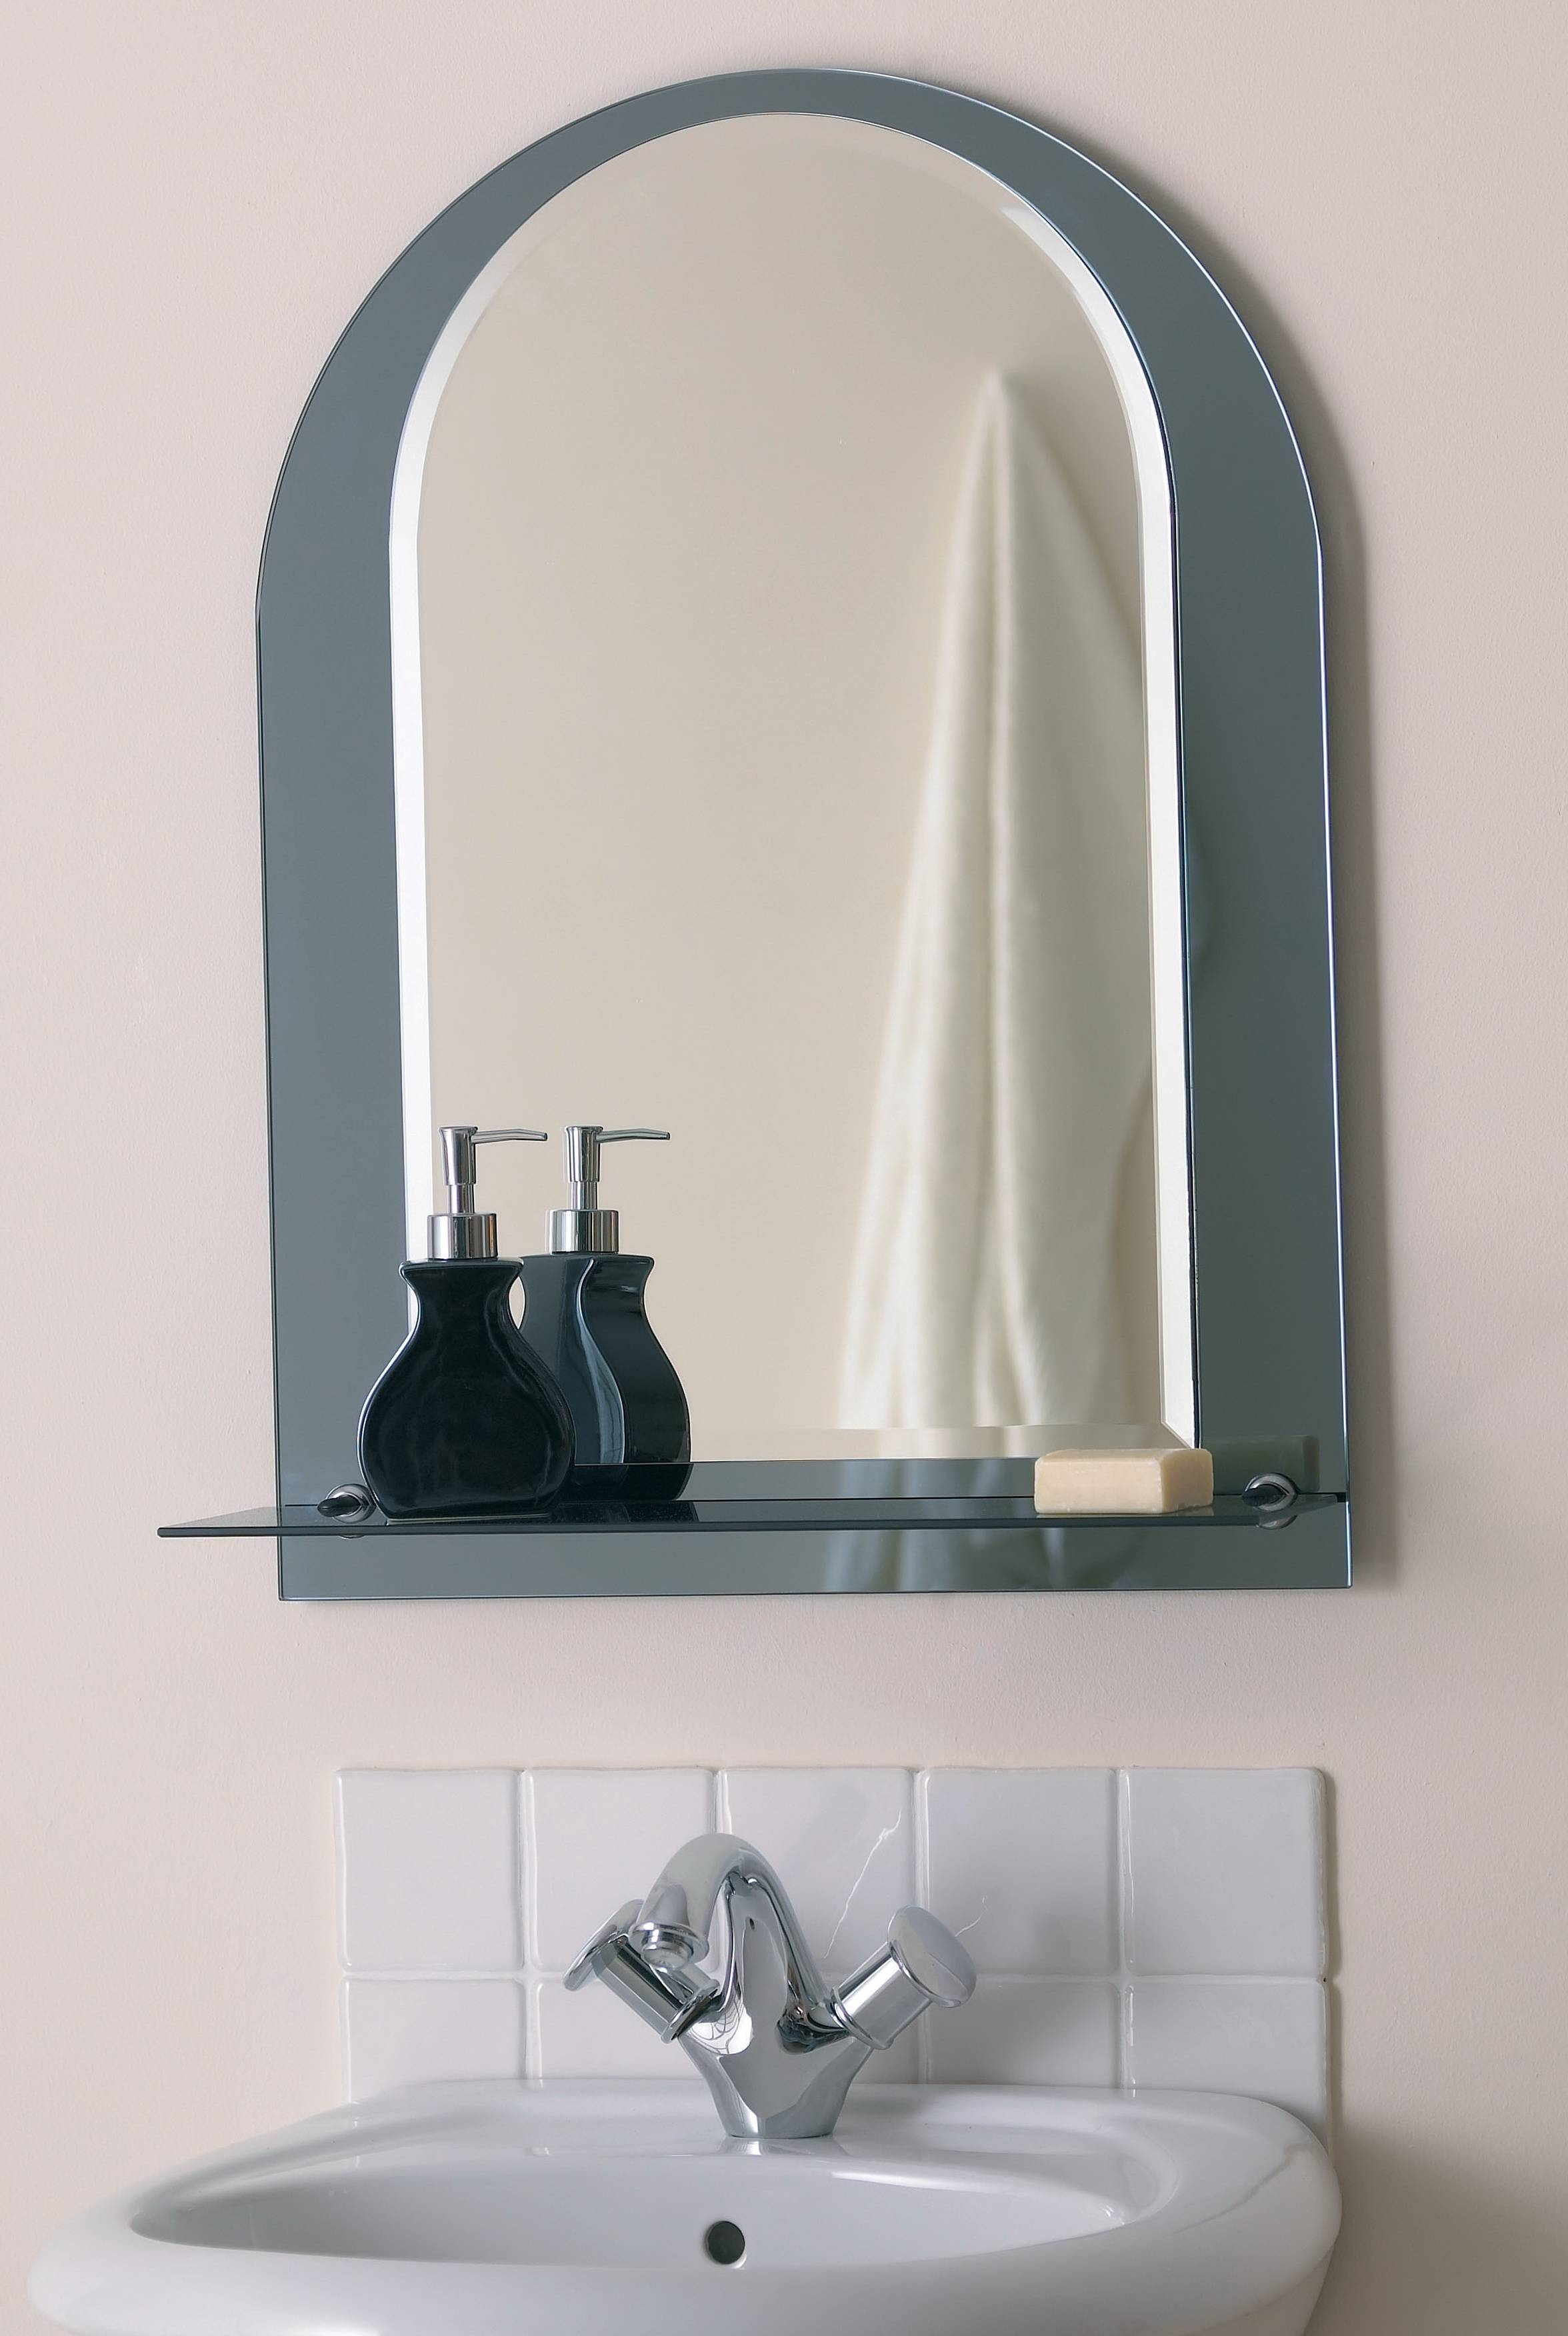 Bathroom: Arched Lowes Bathroom Mirror With Shelf Attached For With Arched Bathroom Mirrors (View 8 of 15)